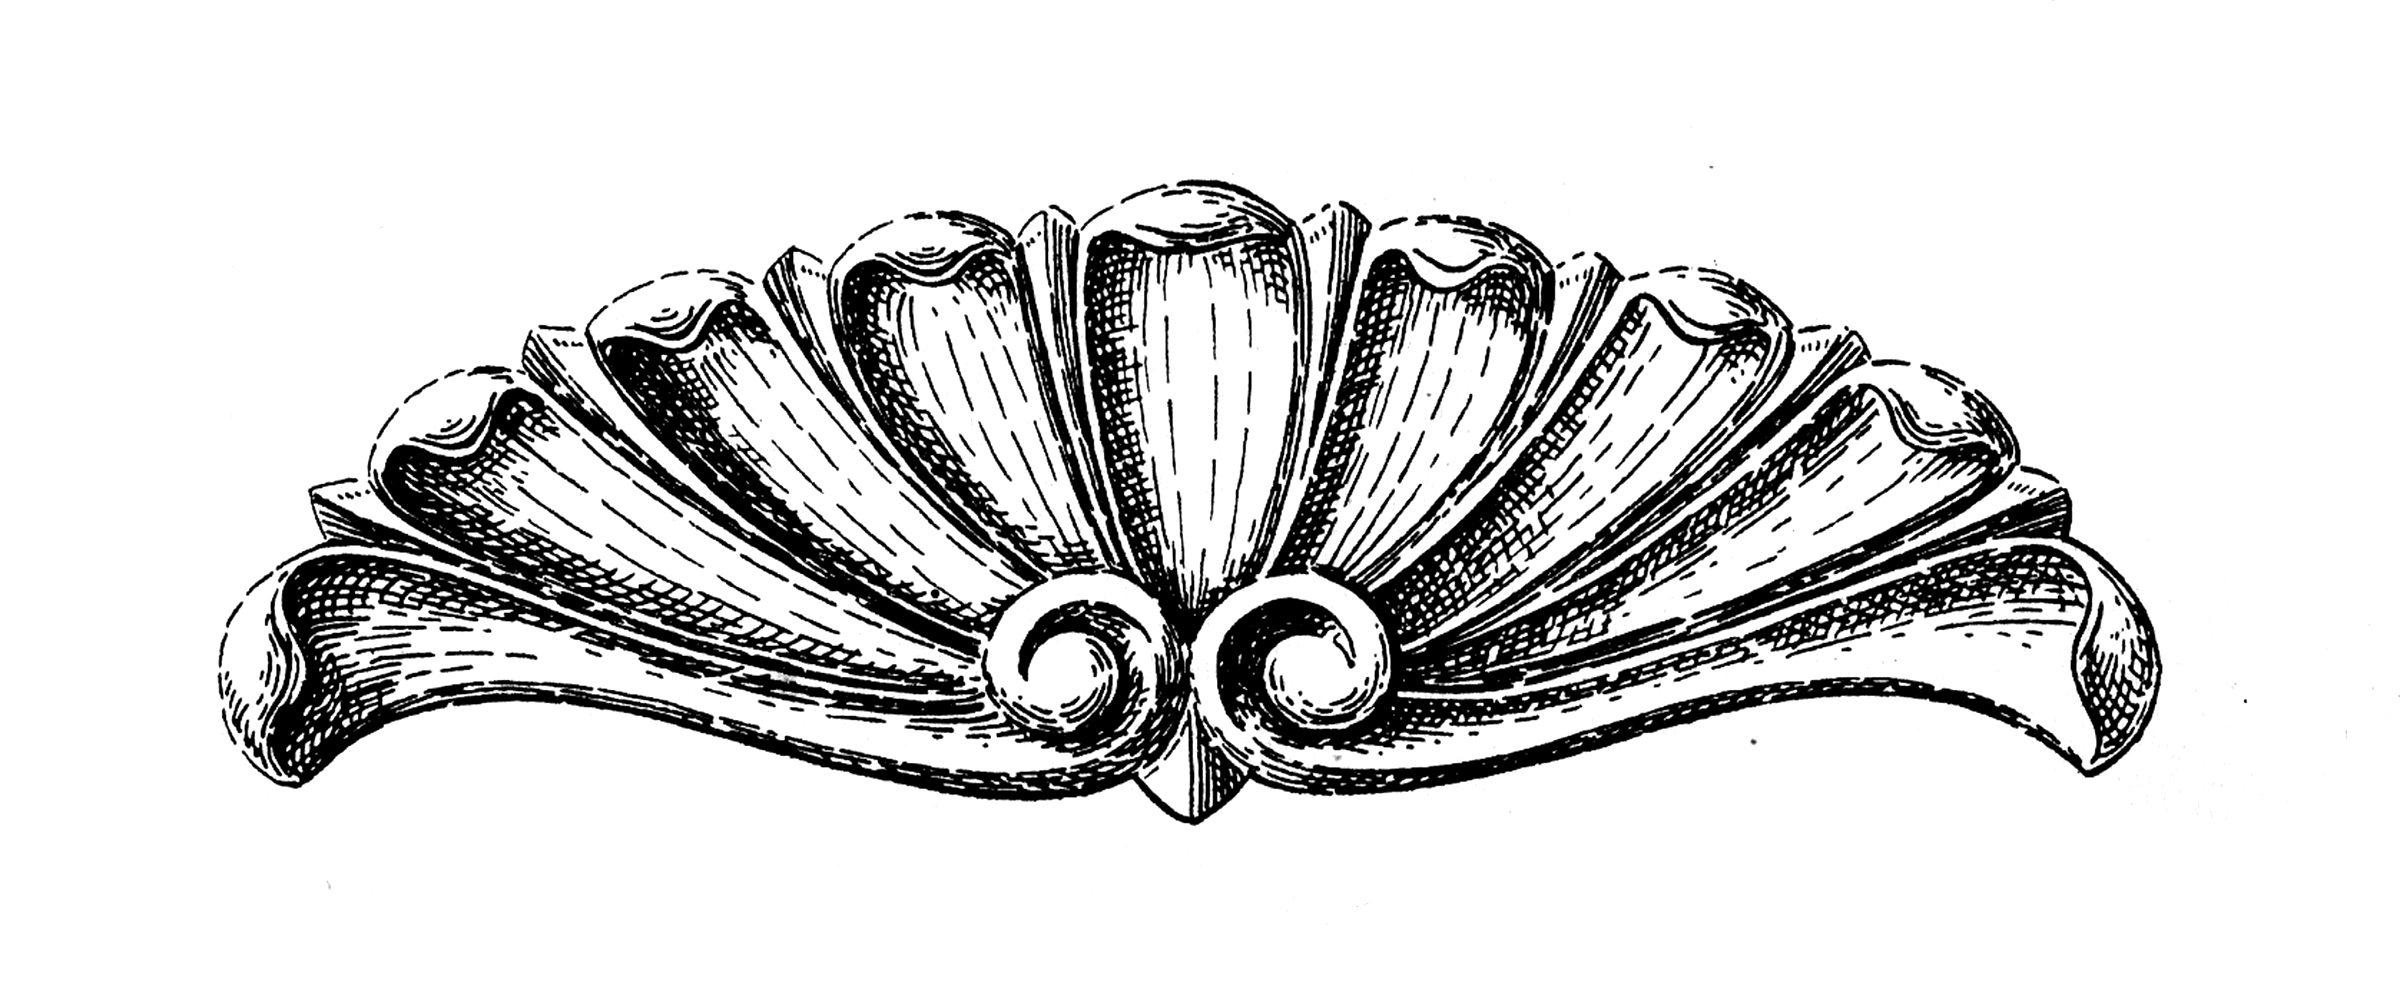 Shell pattern clipart victorian vector black and white stock 10 Ornamental Shell Clipart Images - The Graphics Fairy vector black and white stock